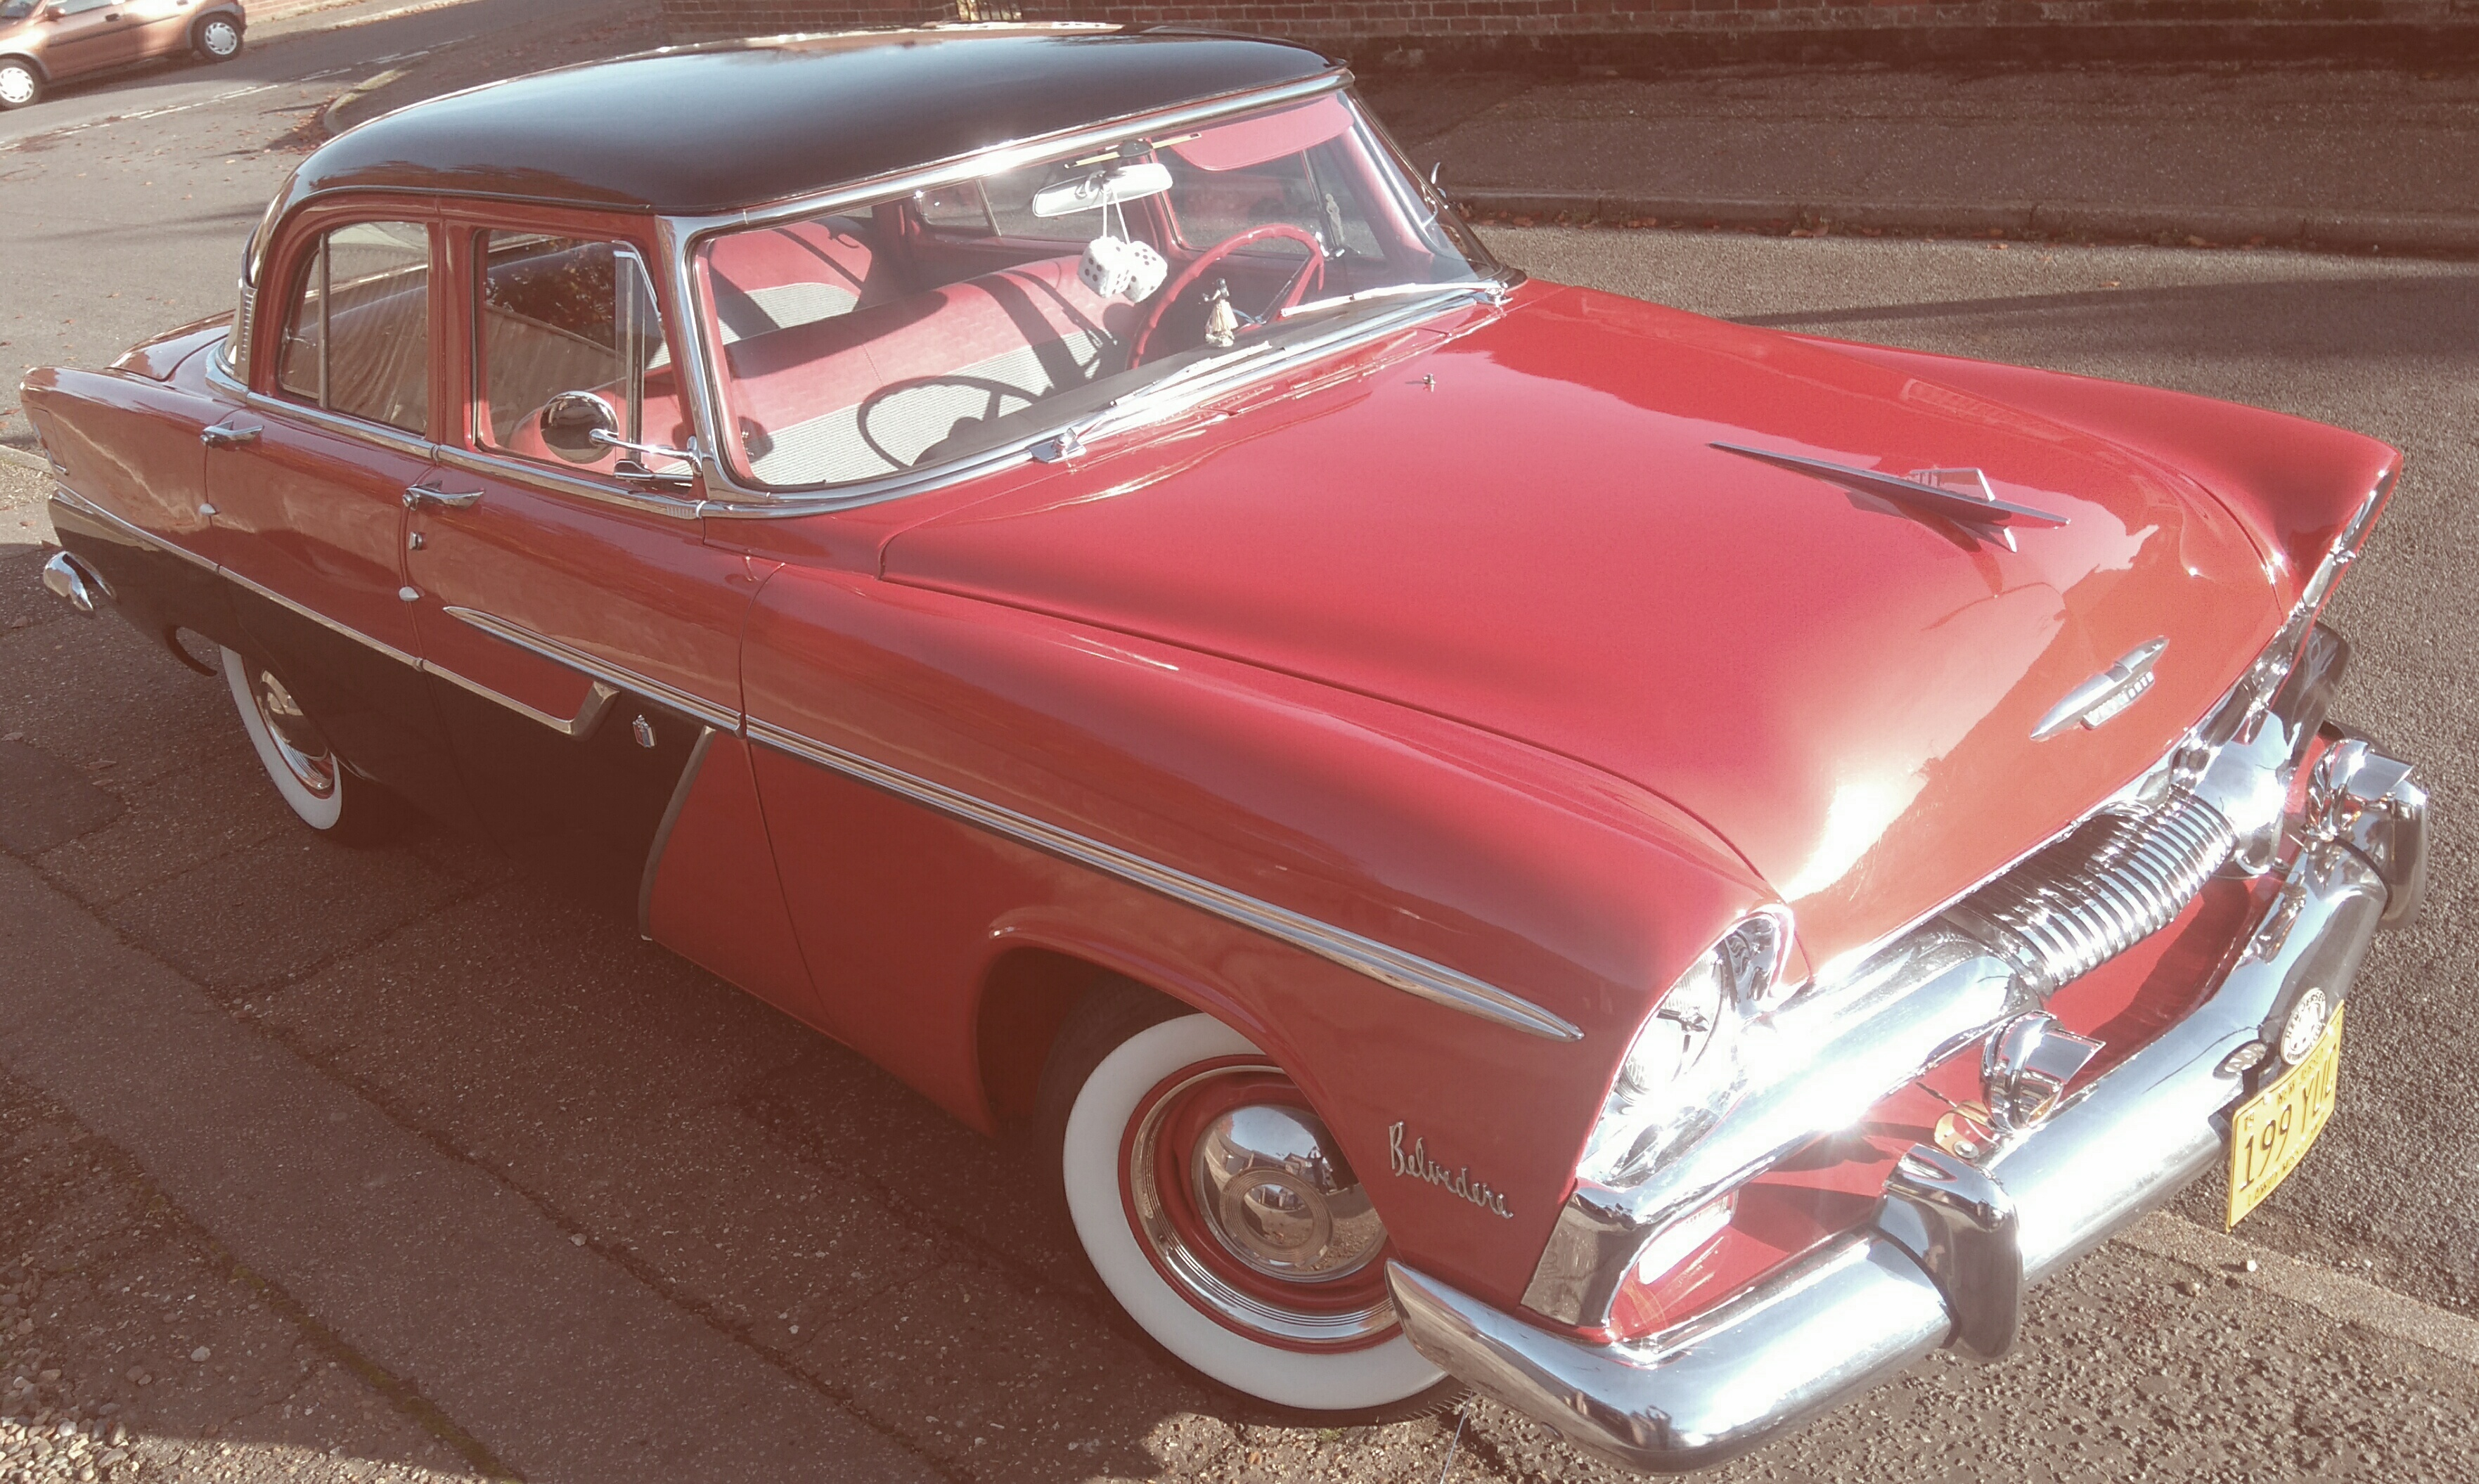 Curbside Classic The Elusive 1955 Plymouth Savoy 1950 To Cars A 4 Door Sedan And Running 6 Cyl Flathead Powerflite Transmission Great Car Here In England Its Very Rare Imported From York Pn Usa 2011